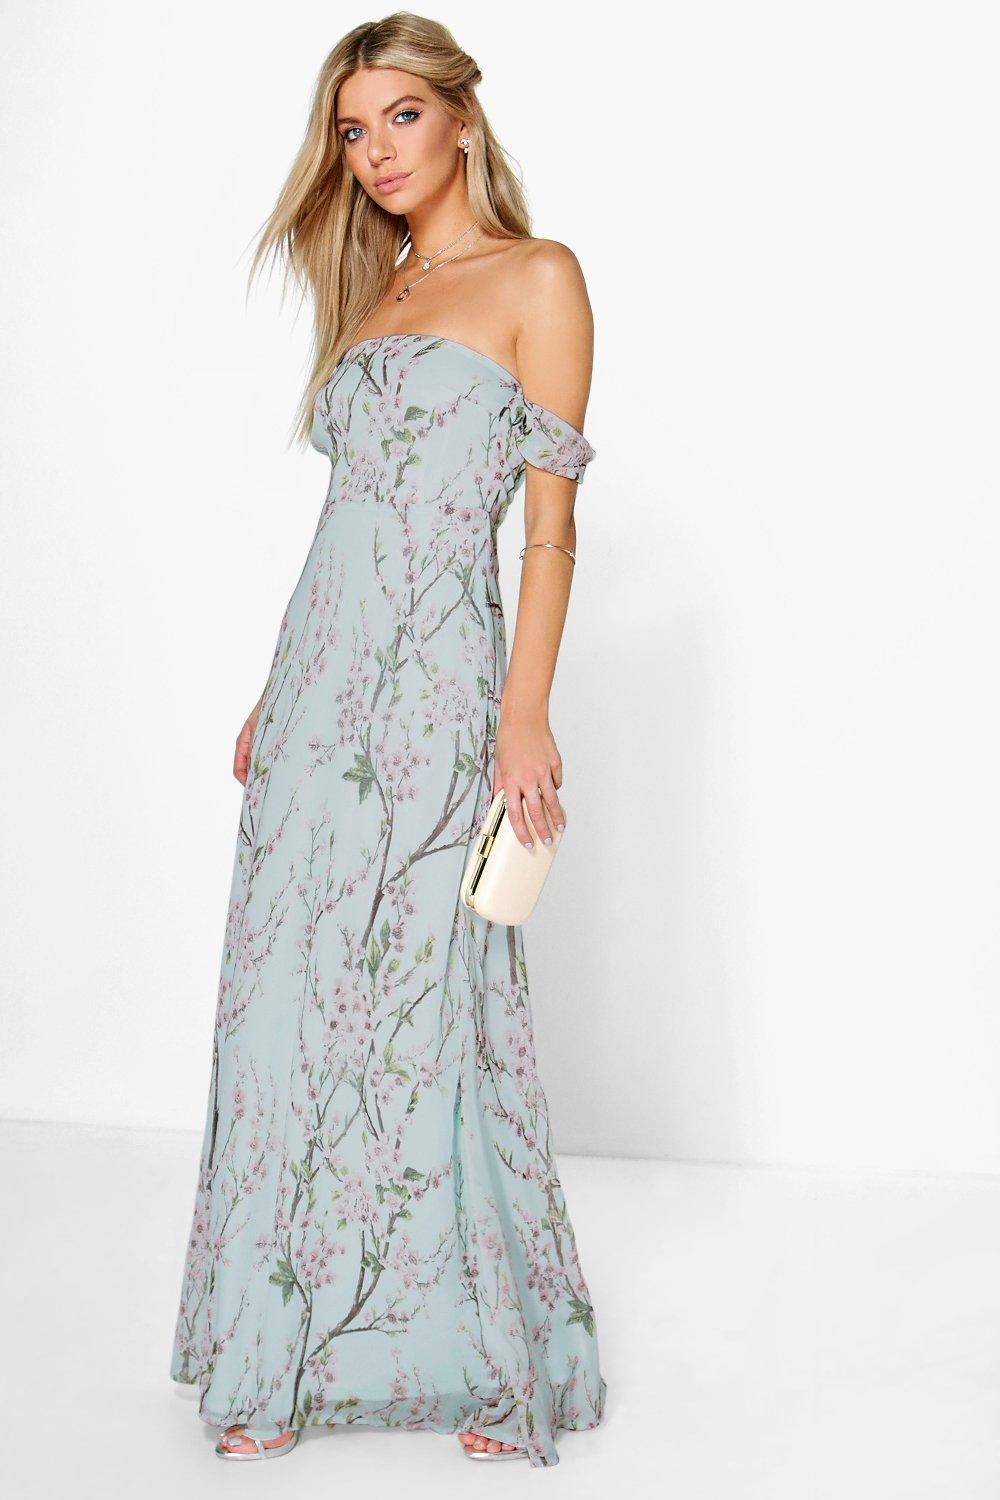 Jessica Floral Off The Shoulder Maxi Dress At Boohoo Com